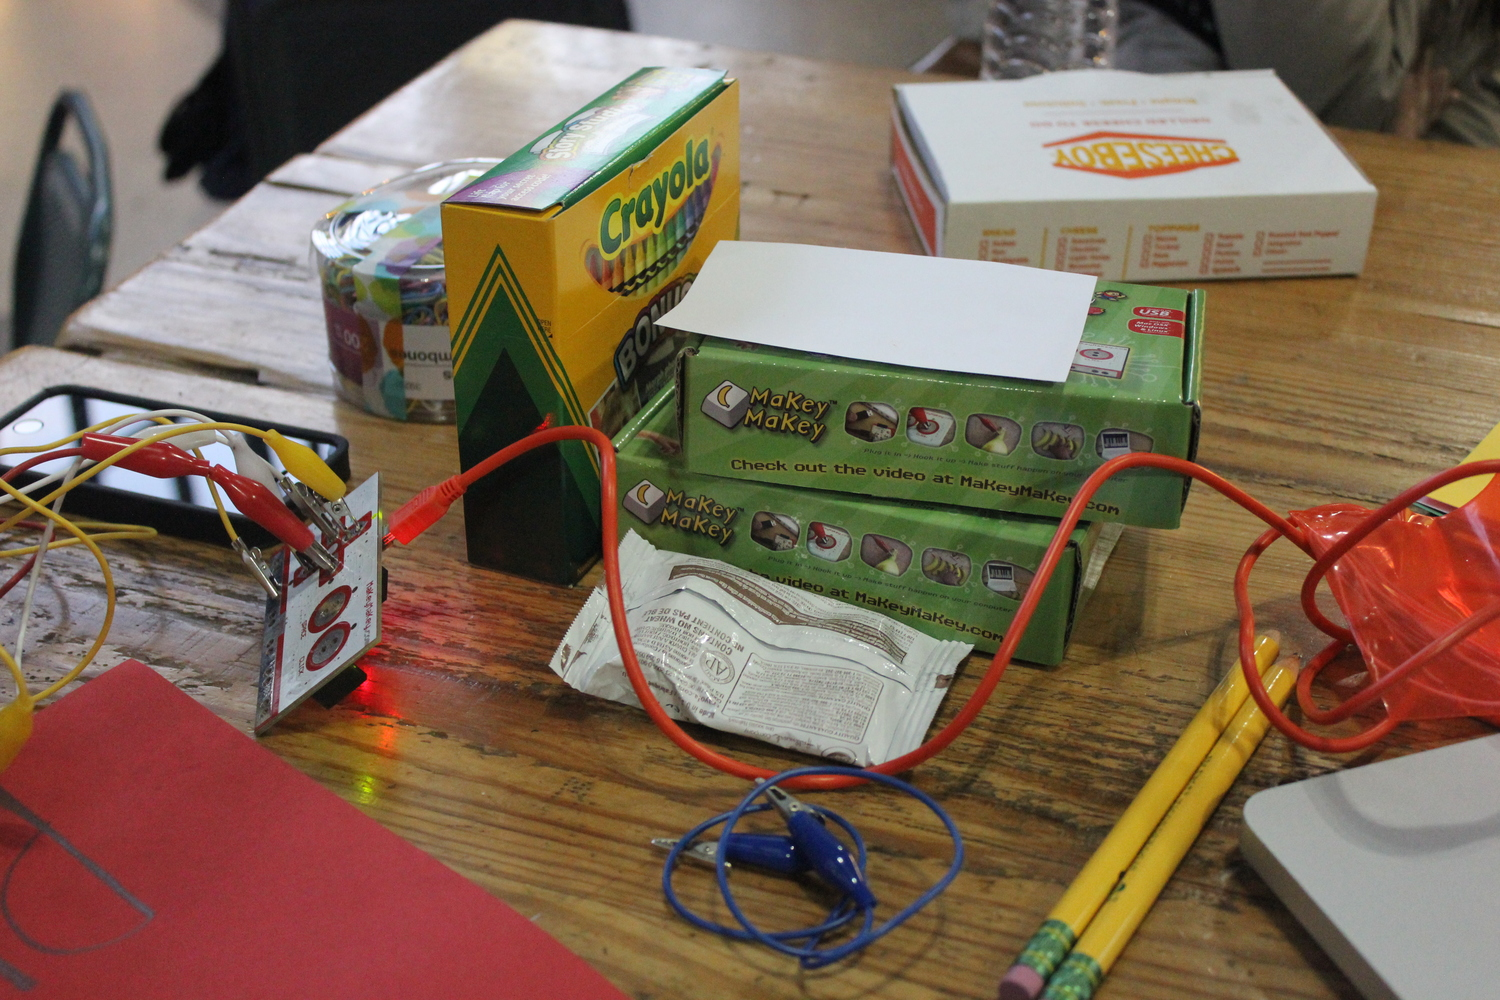 Wires, crayons, pencils, and two boxes of the makey-makey kit on a wooden table